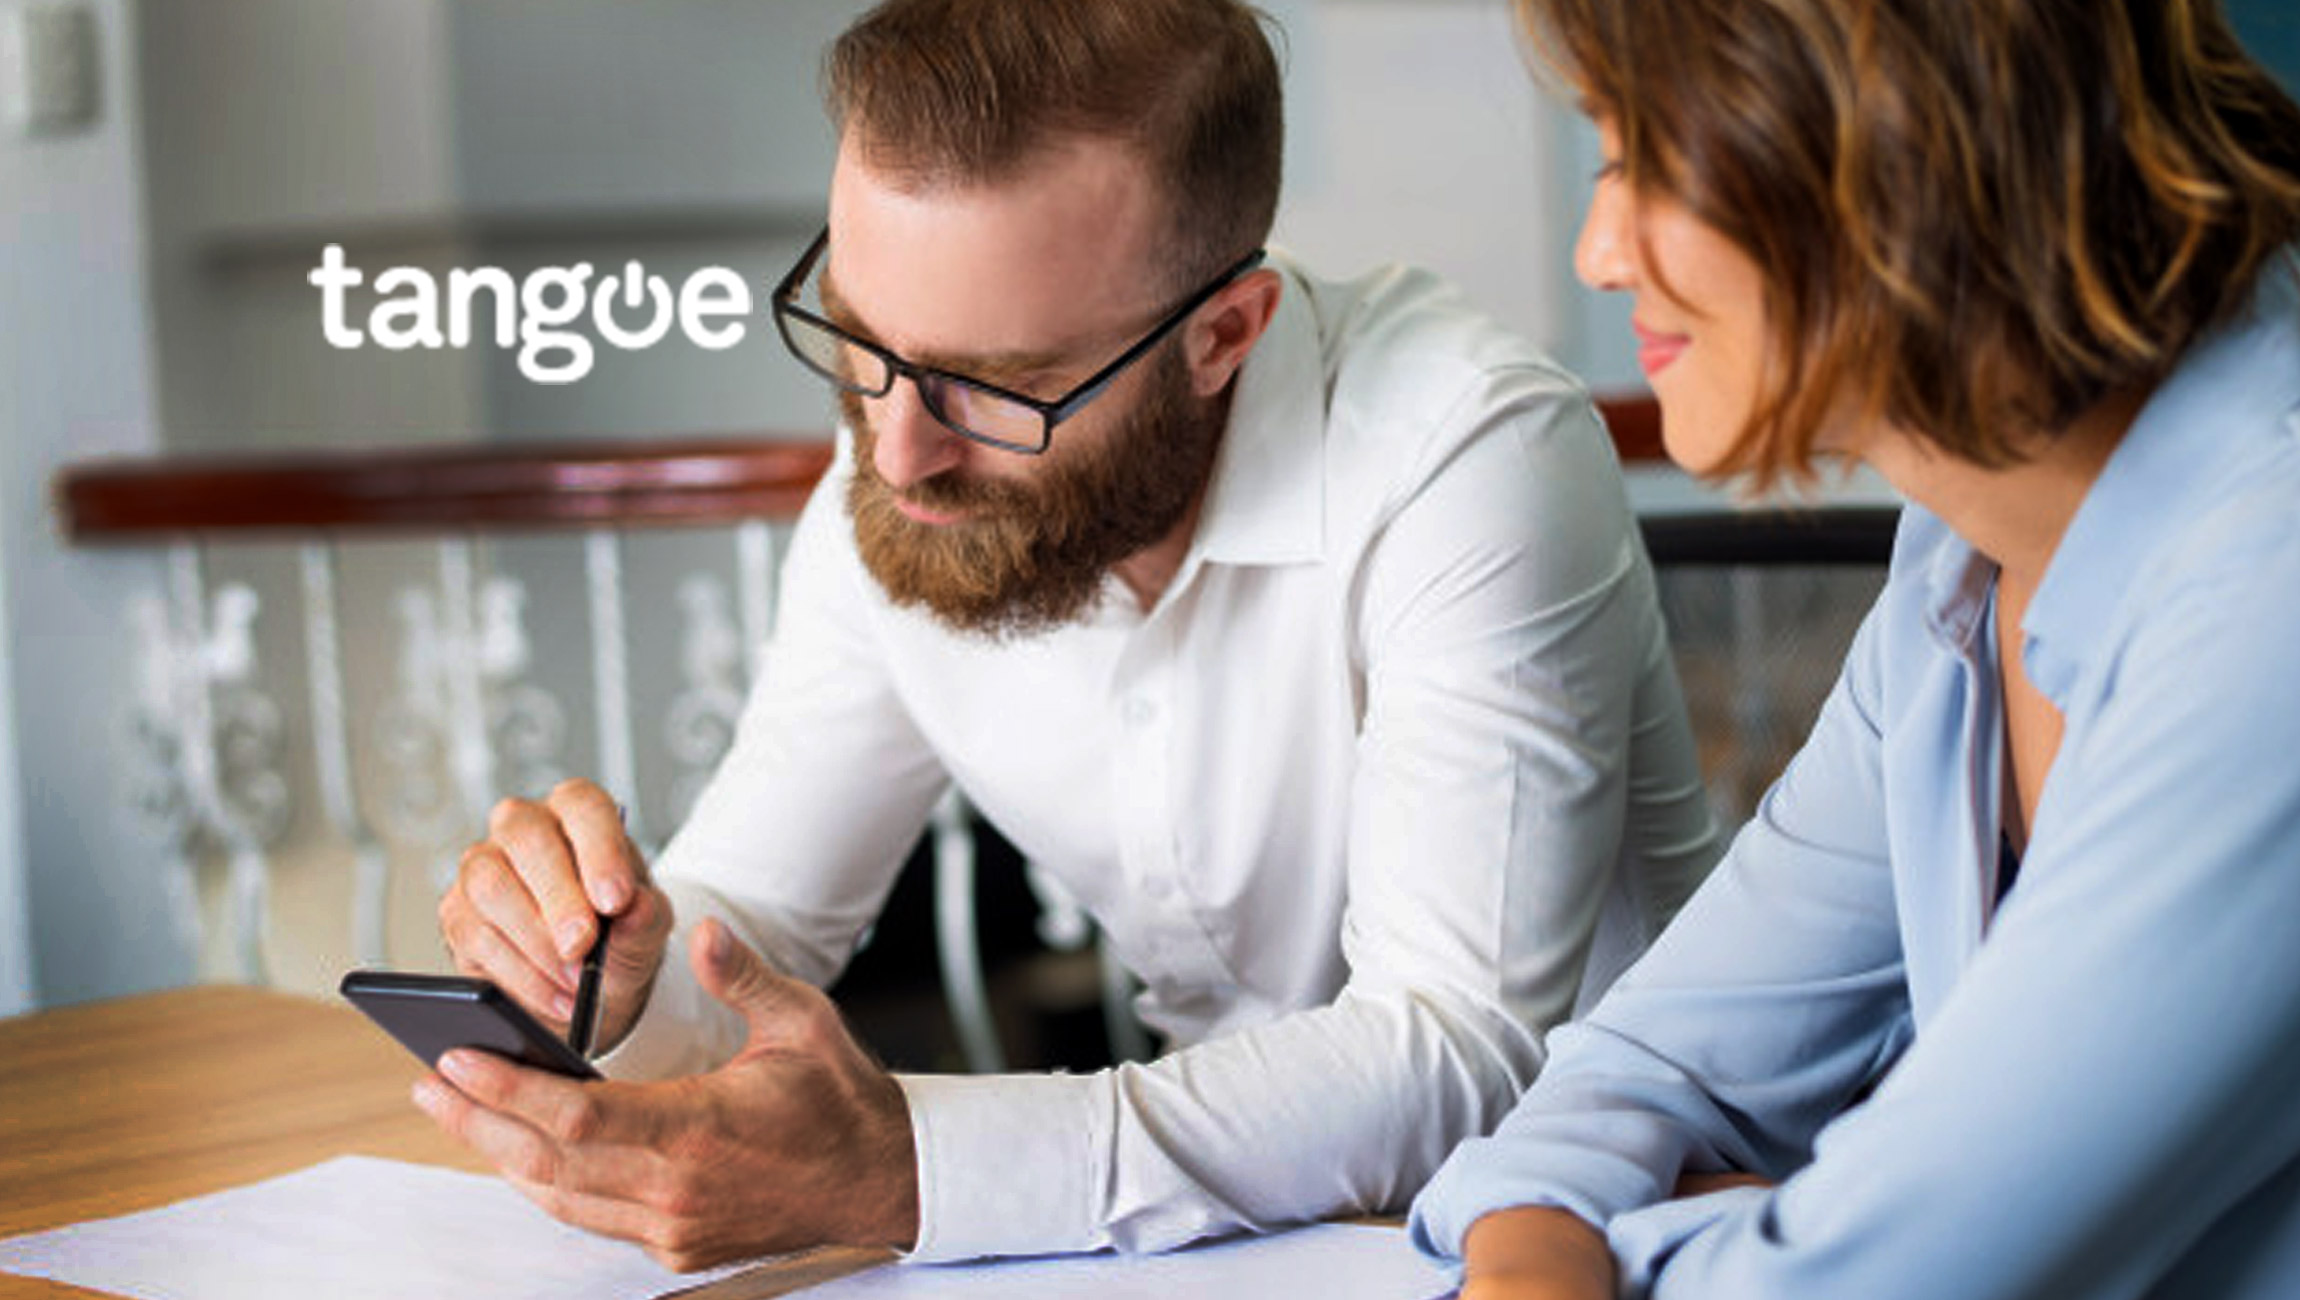 Tangoe Appoints James Parker as Chief Executive Officer